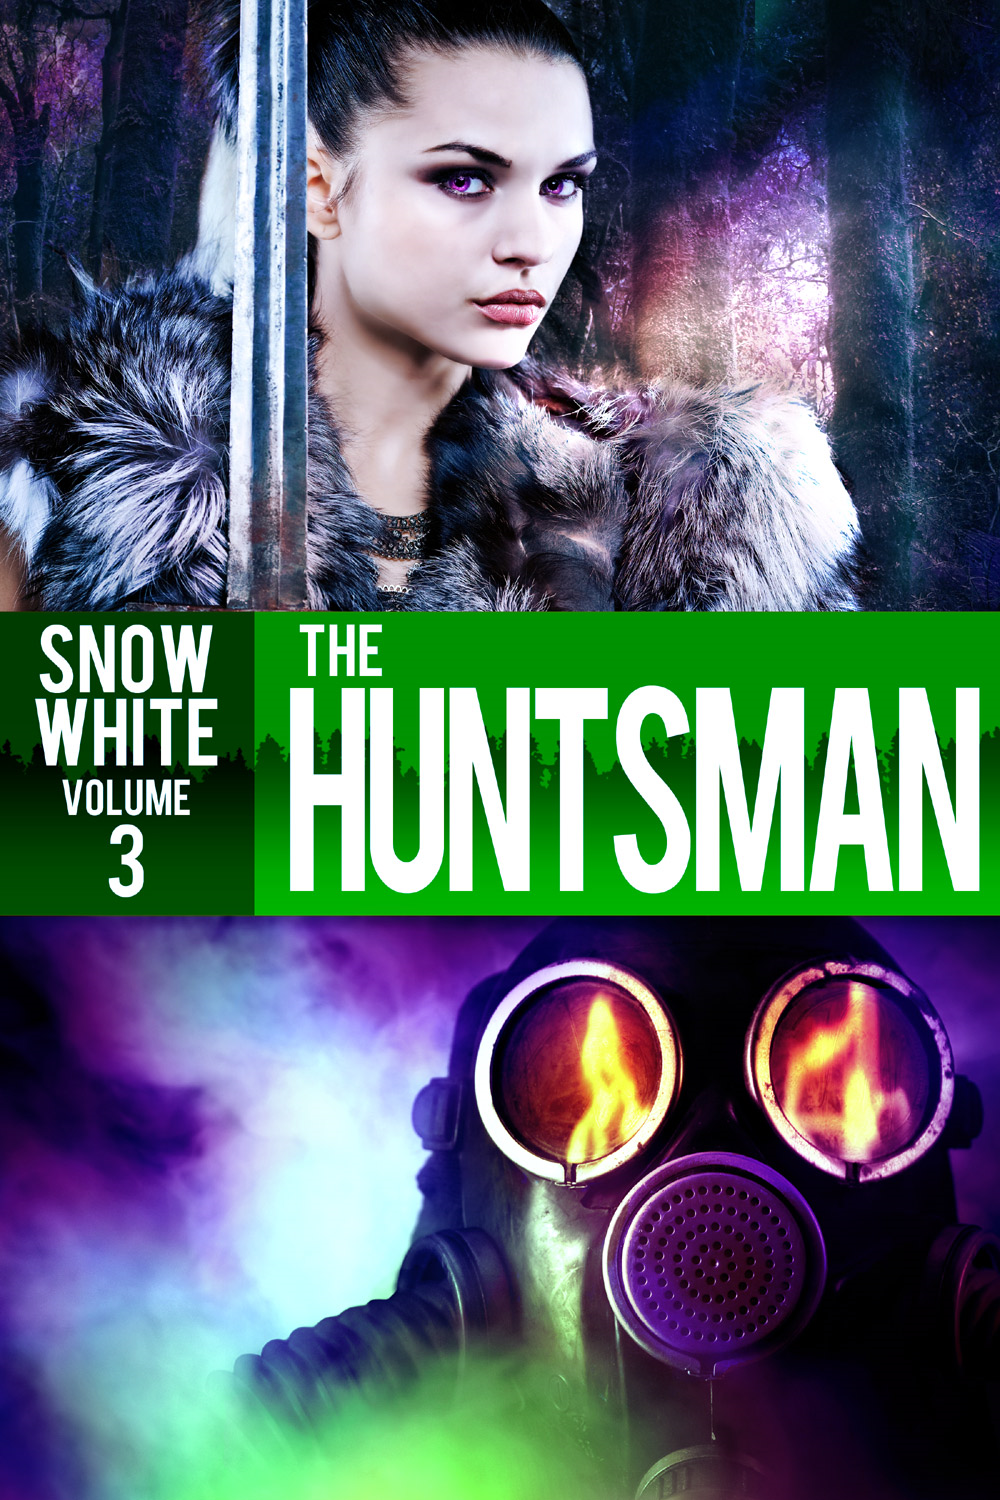 The Huntsman (Snow White, Vol 3)